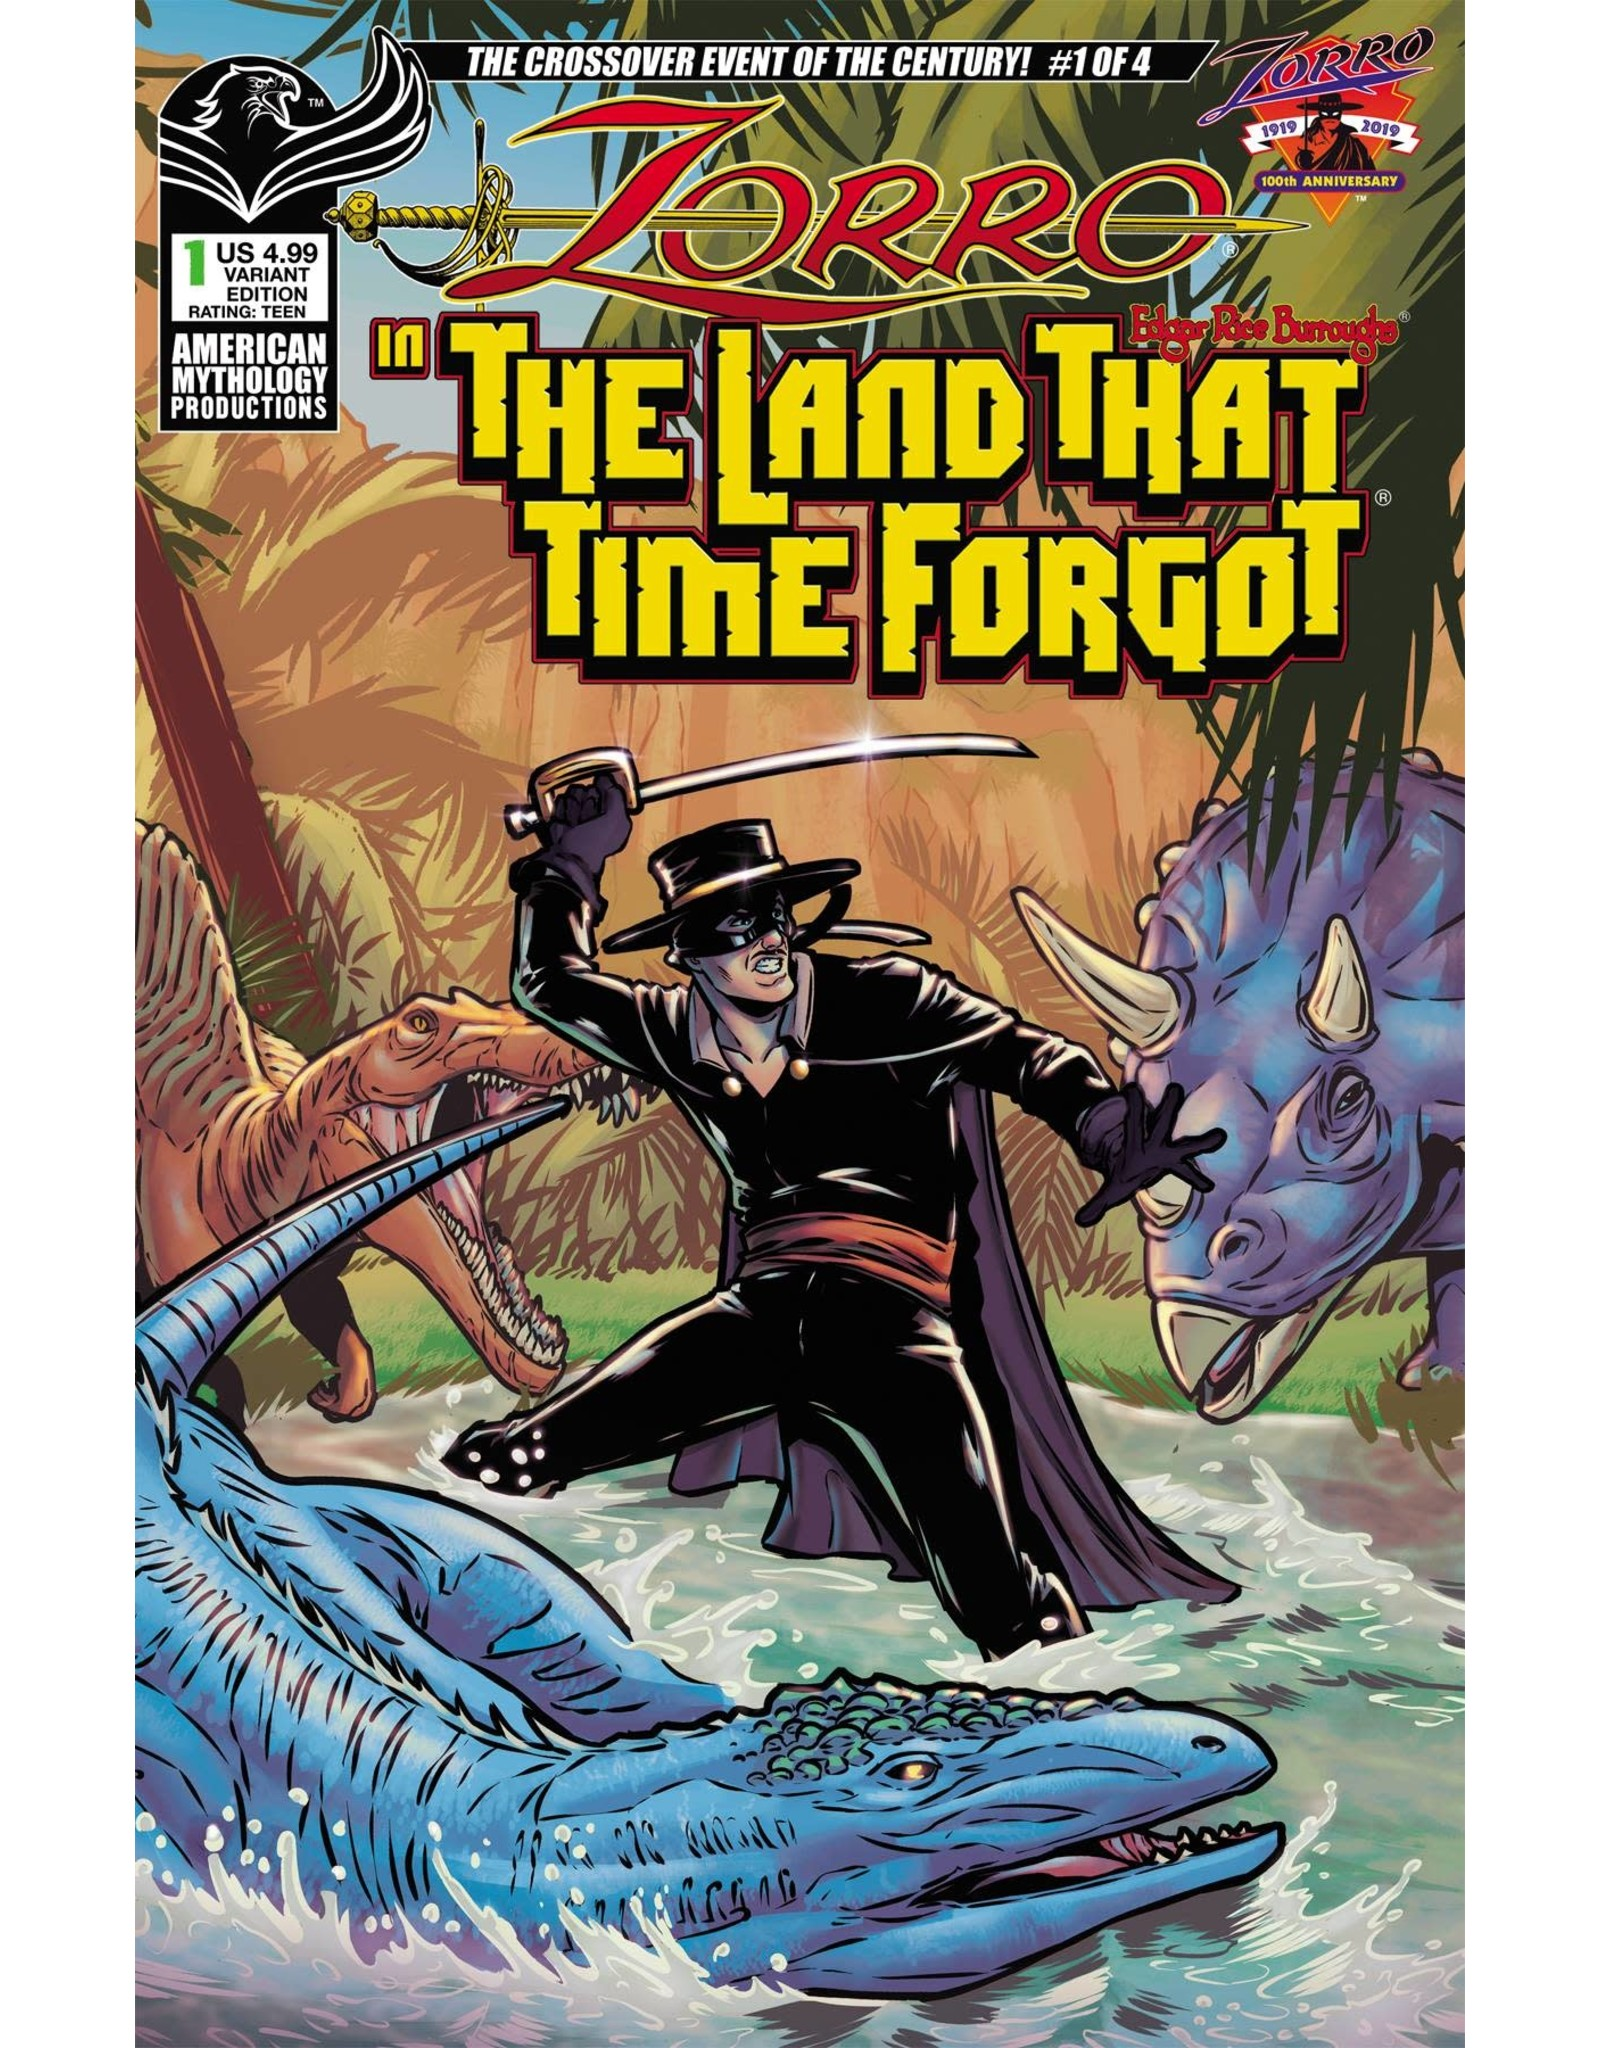 AMERICAN MYTHOLOGY PRODUCTIONS ZORRO IN LAND THAT TIME FORGOT #1 CVR B PUGLIA